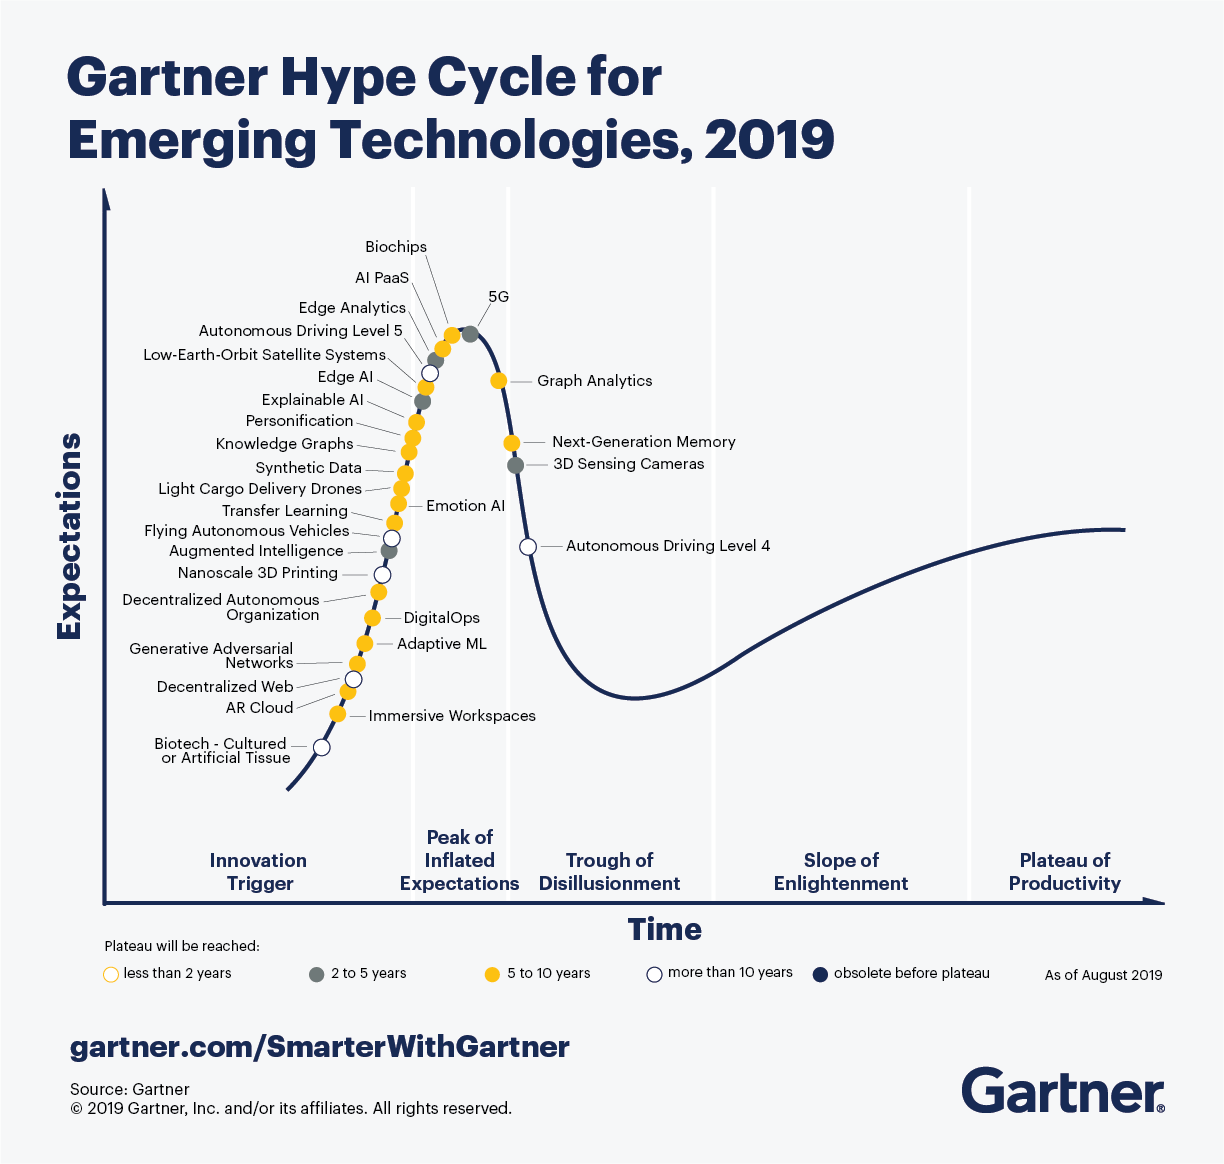 The image highlights the Gartner's hype cycle of emerging technology, 2019.